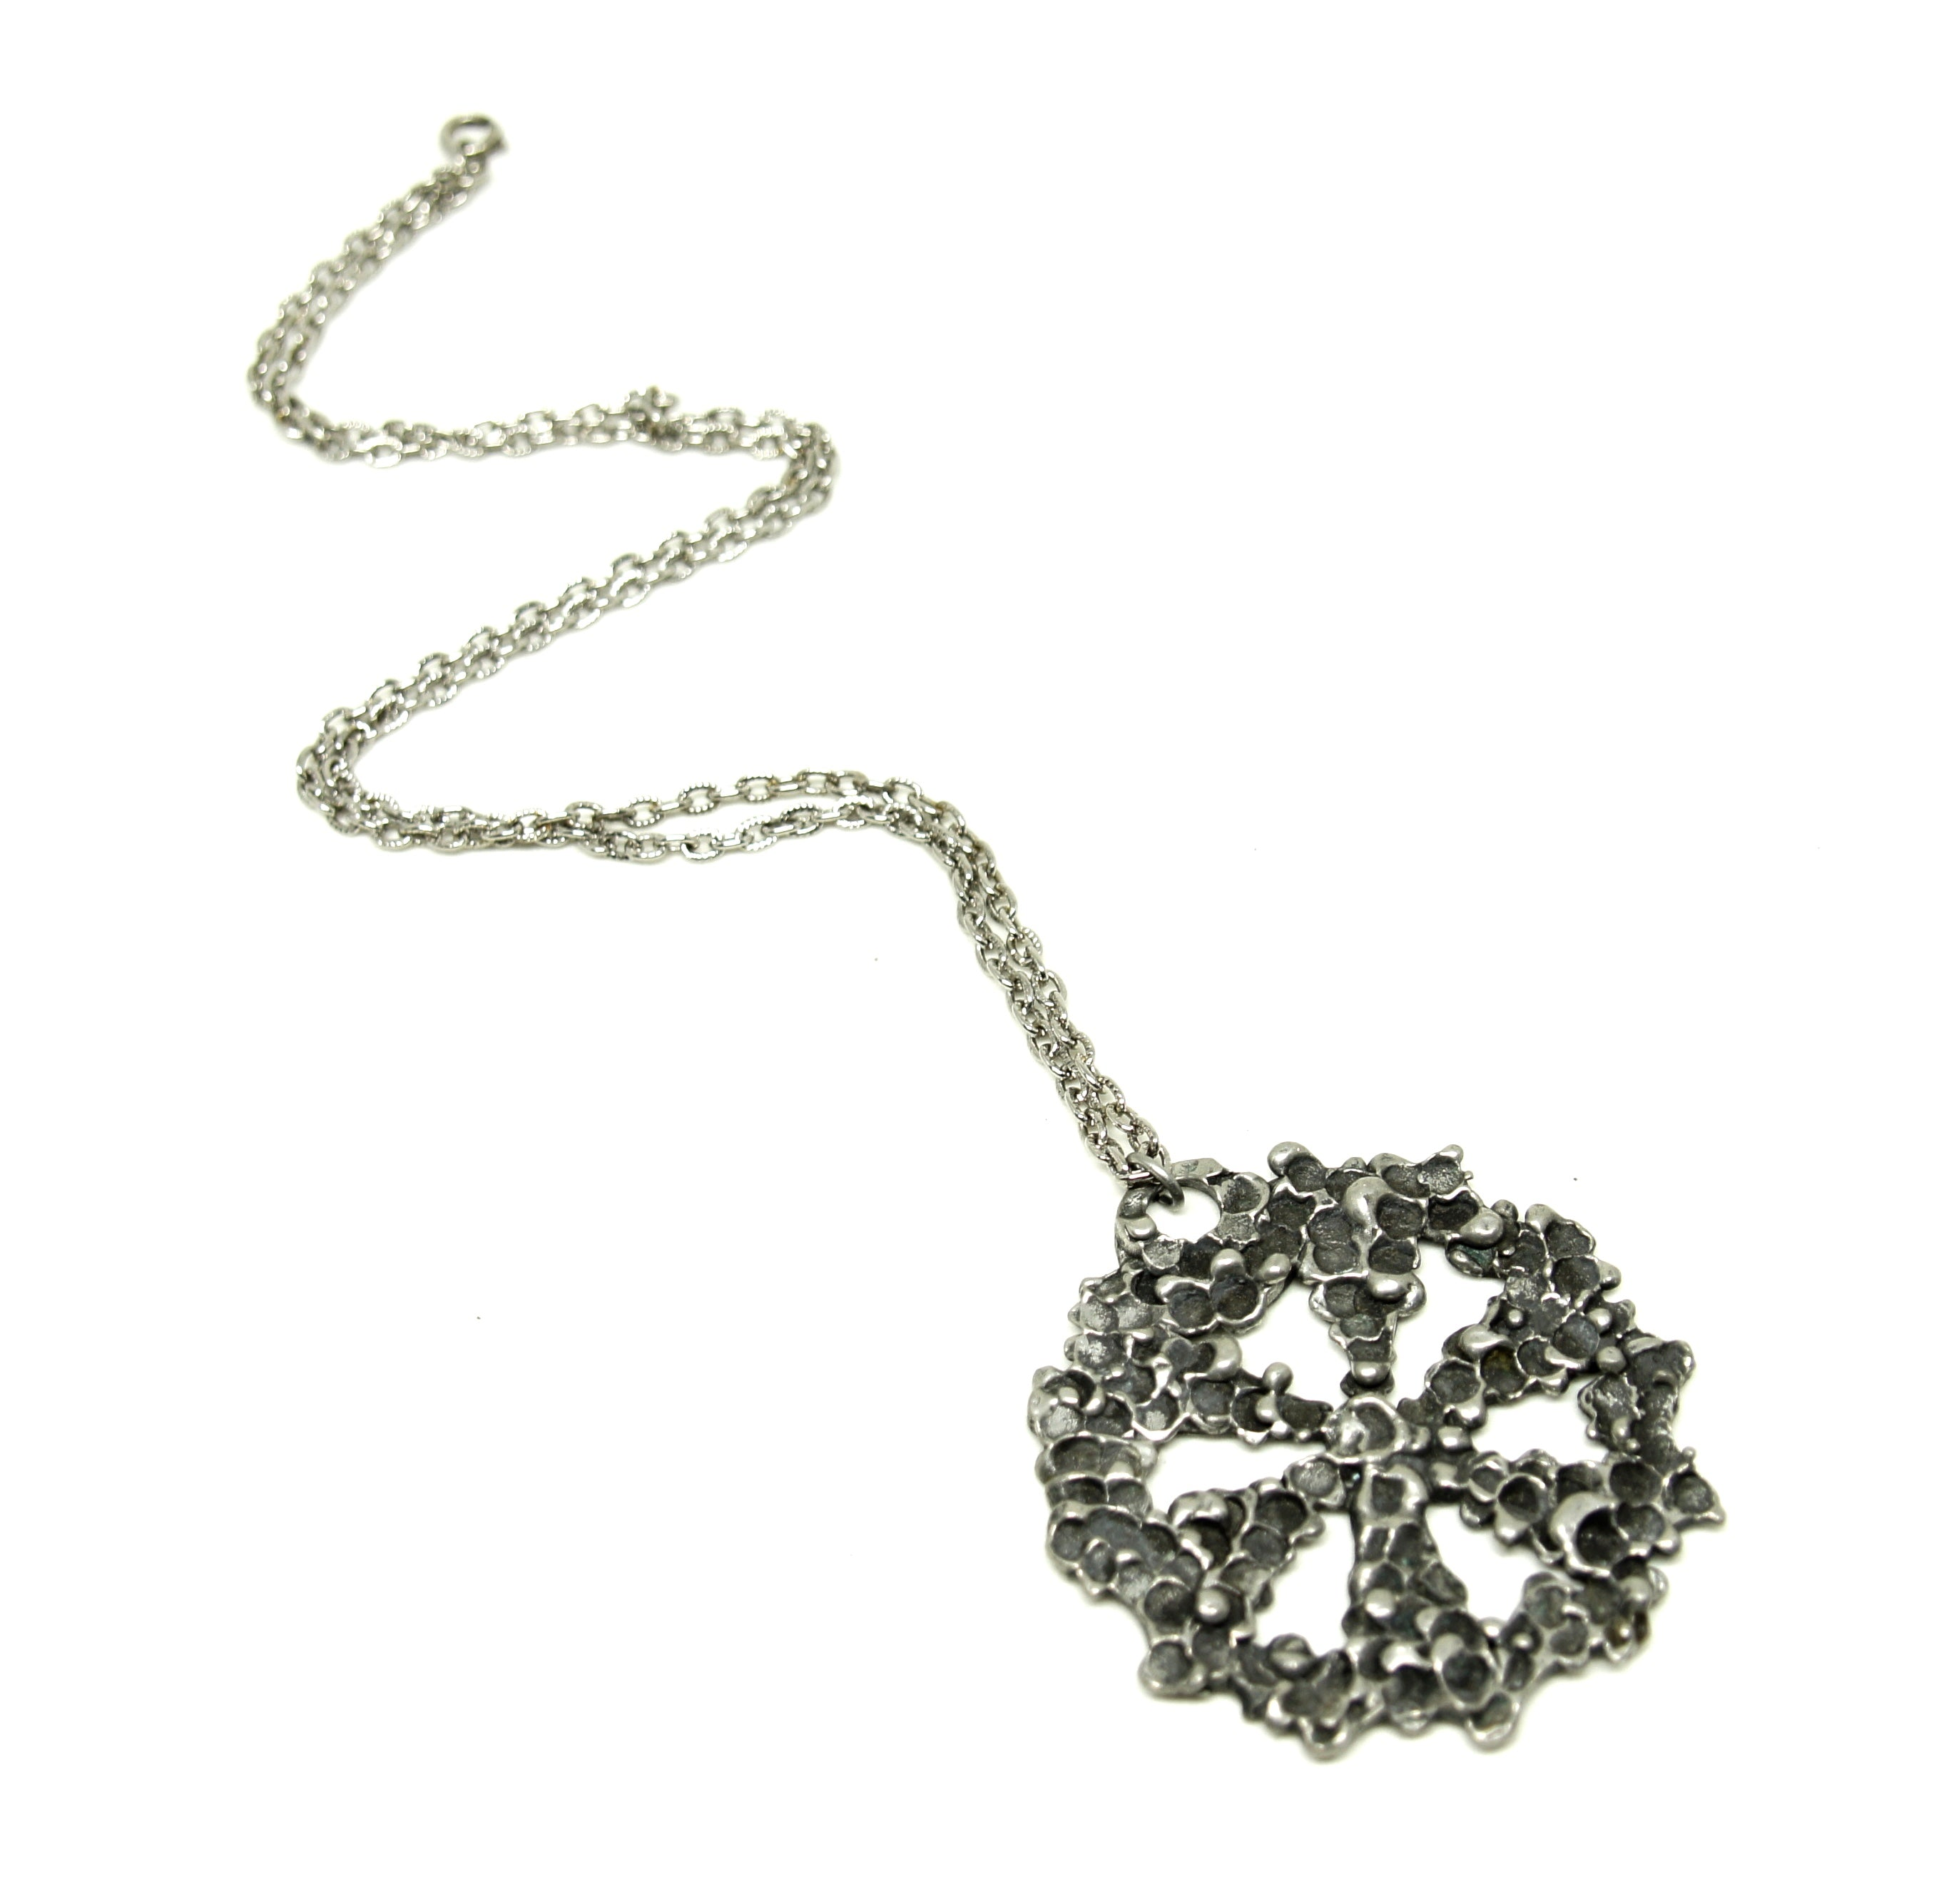 Robert Larin Necklace - Snowflake - Brutalist Modernist